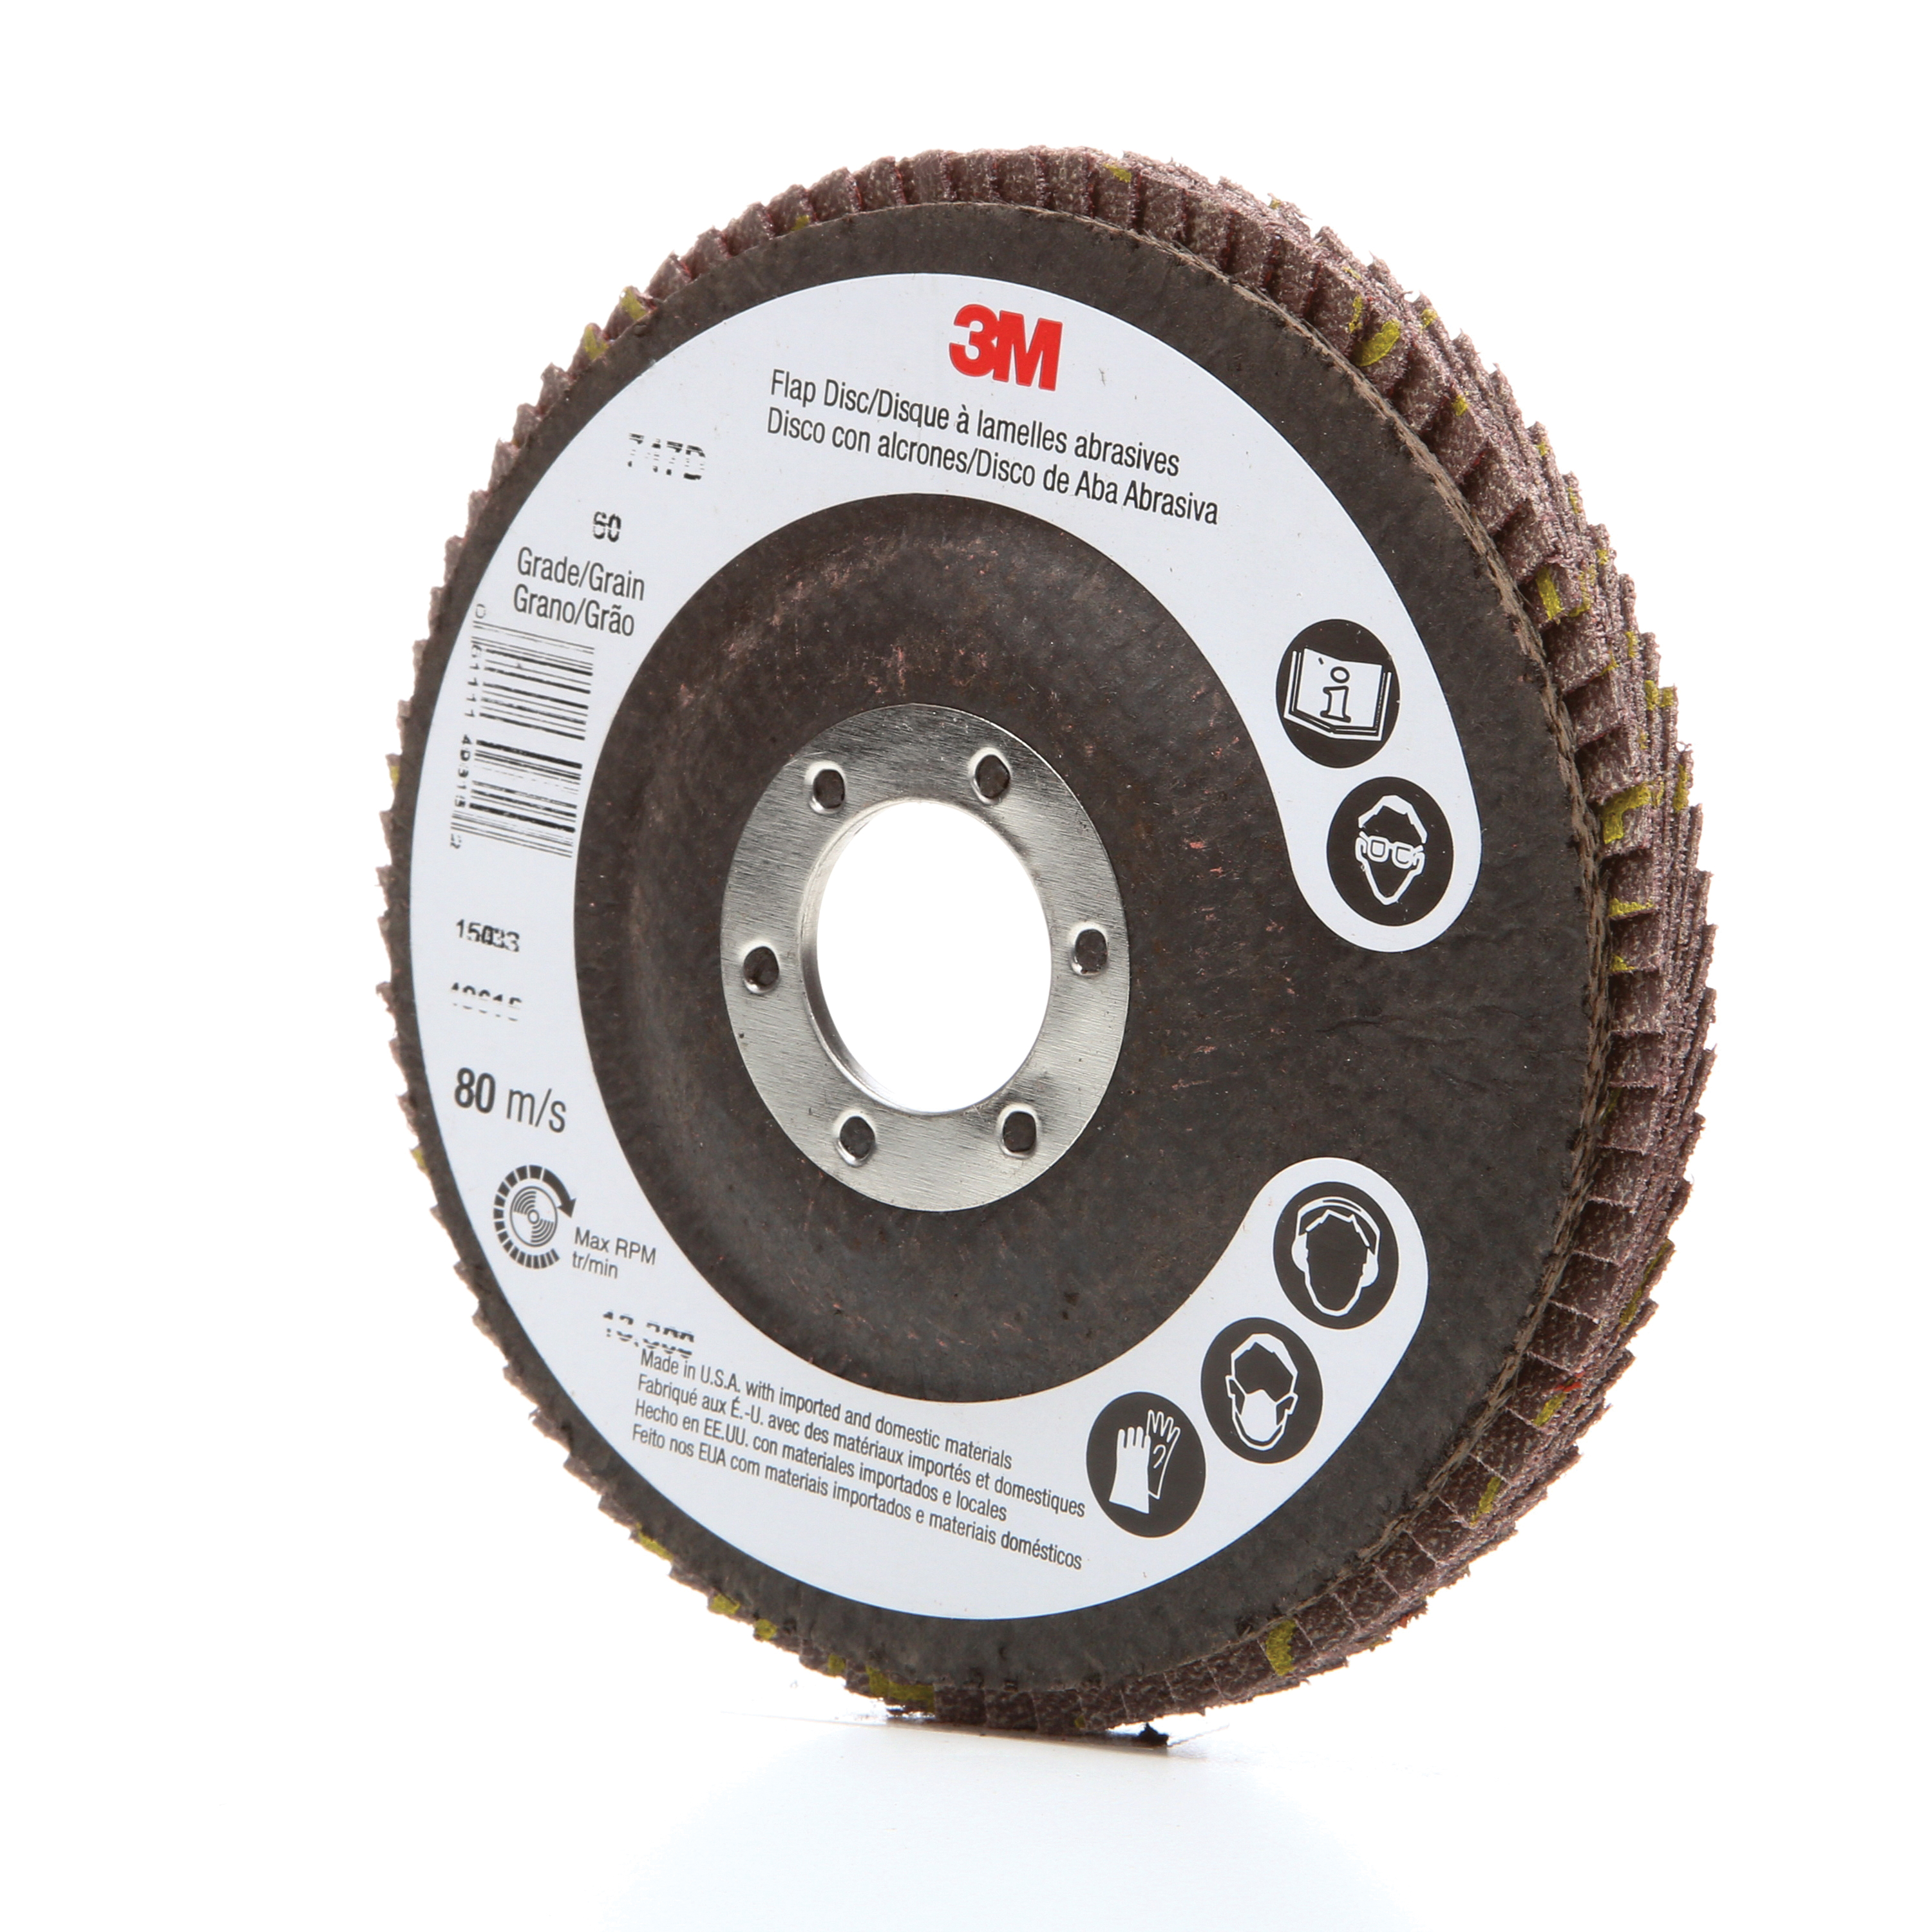 3M™ 051111-49615 Close Quick-Change Coated Abrasive Flap Disc, 4-1/2 in Dia, 7/8 in Center Hole, 60 Grit, Medium Grade, Ceramic Abrasive, Type 27 Disc